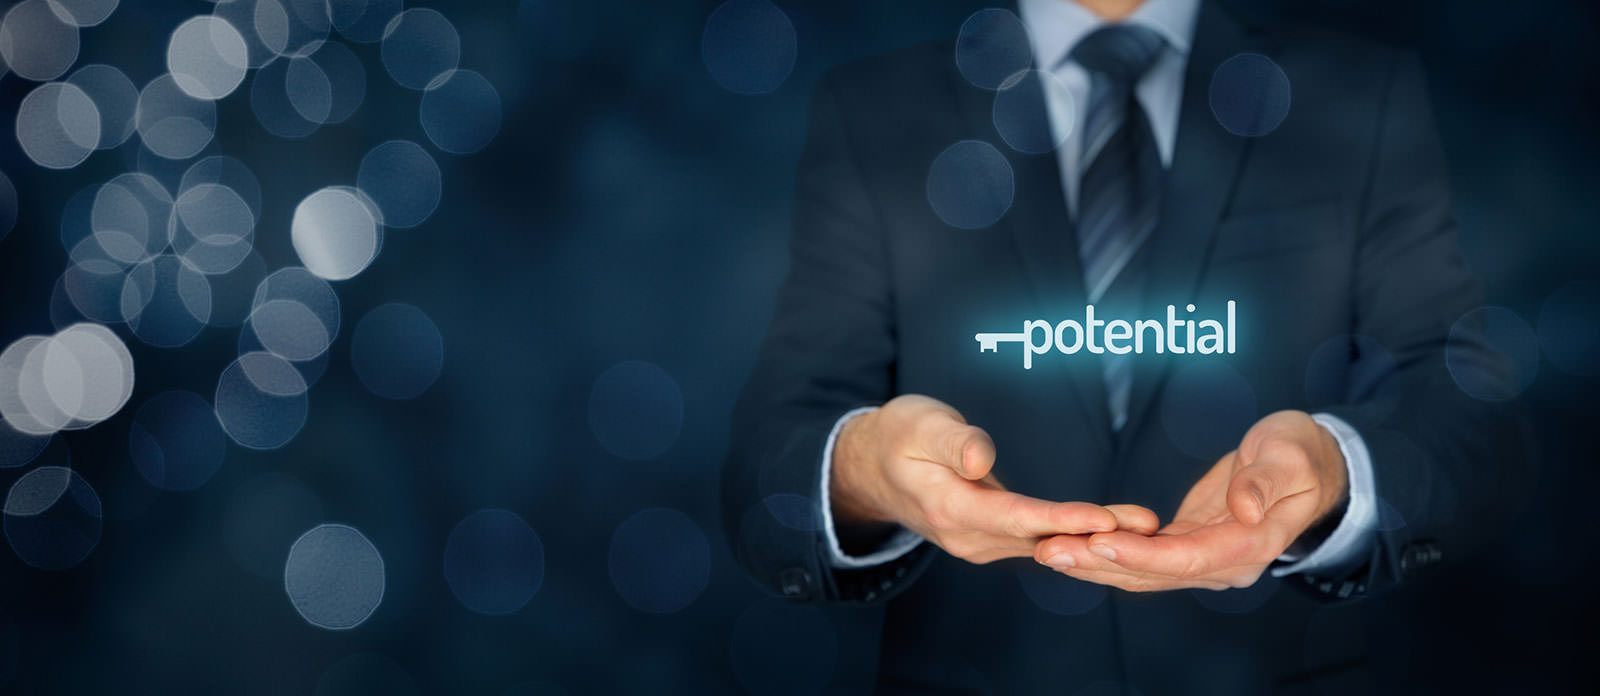 Innovationsconsulting - Potentiale finden